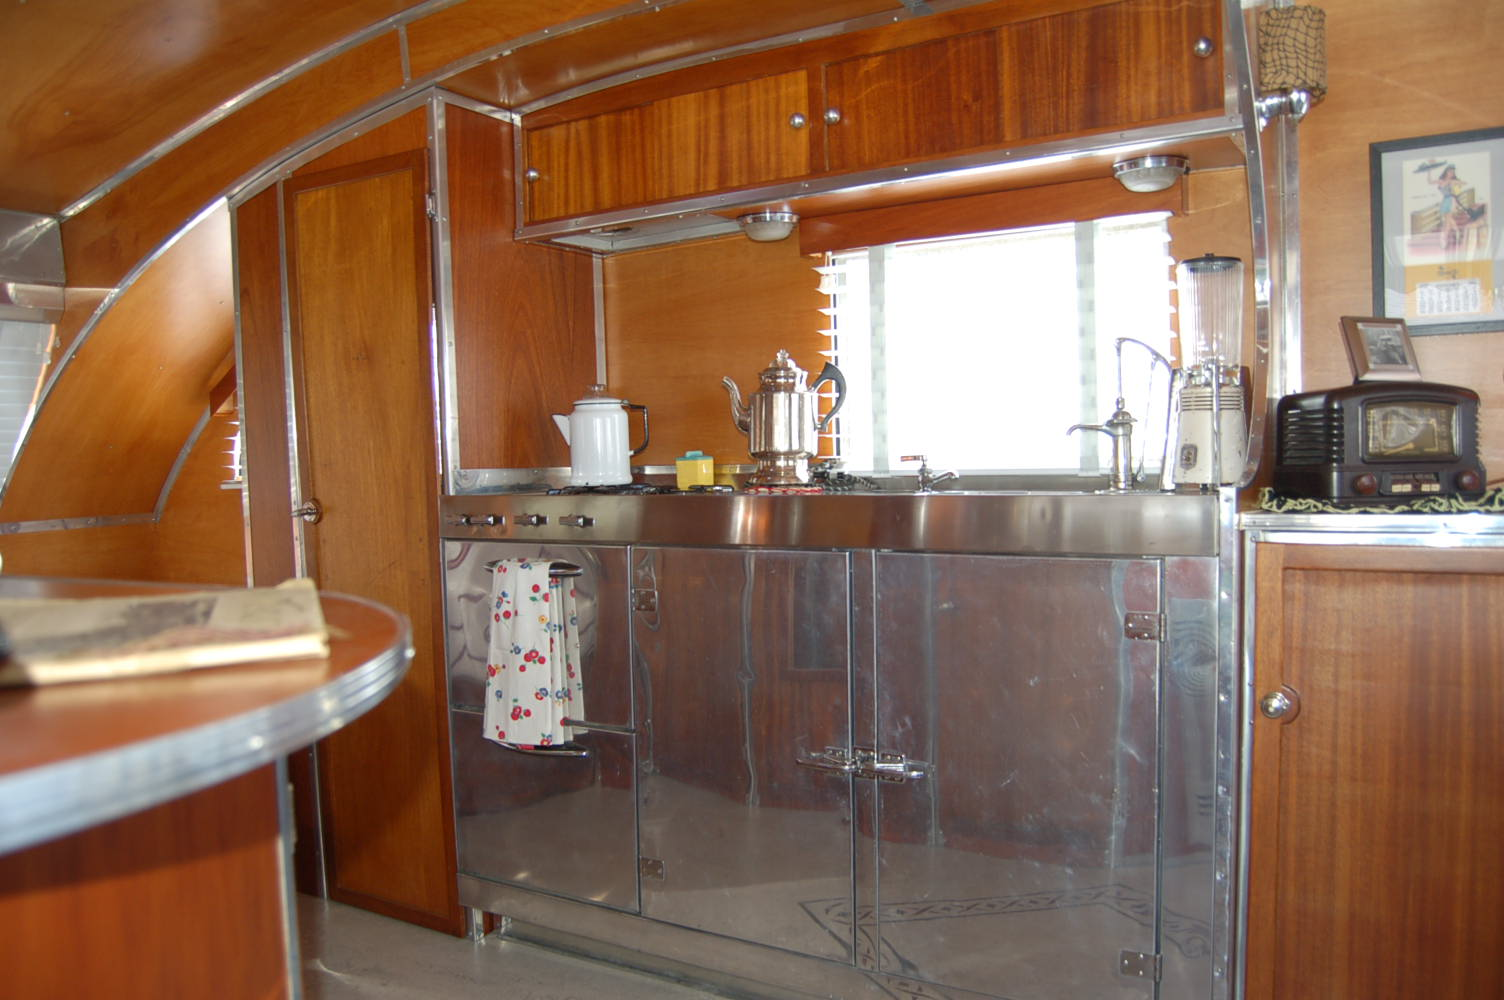 Designer Factory Kitchens Vintage Trailer Interiors From The 1940 S From Oldtrailer Com